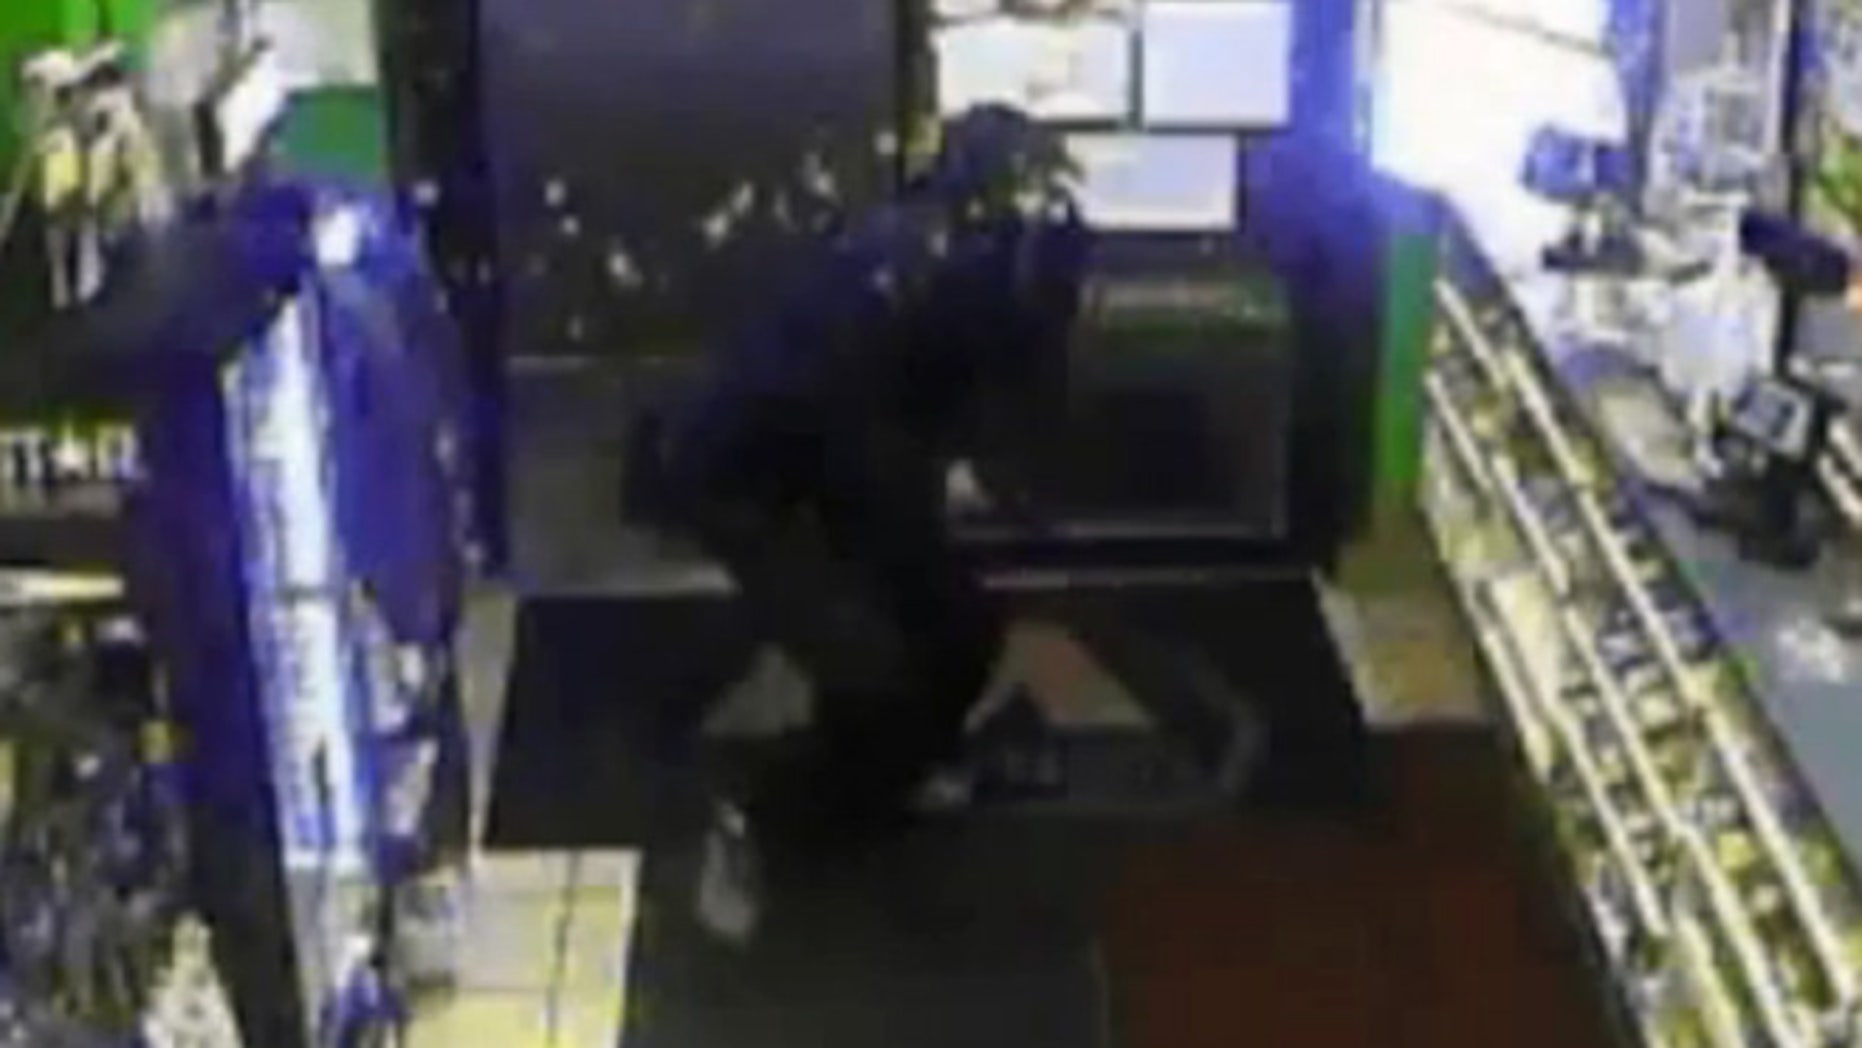 An armed robbery suspect was splashed in the face with hot coffee Sunday at a gas station in Muncie, Ind.